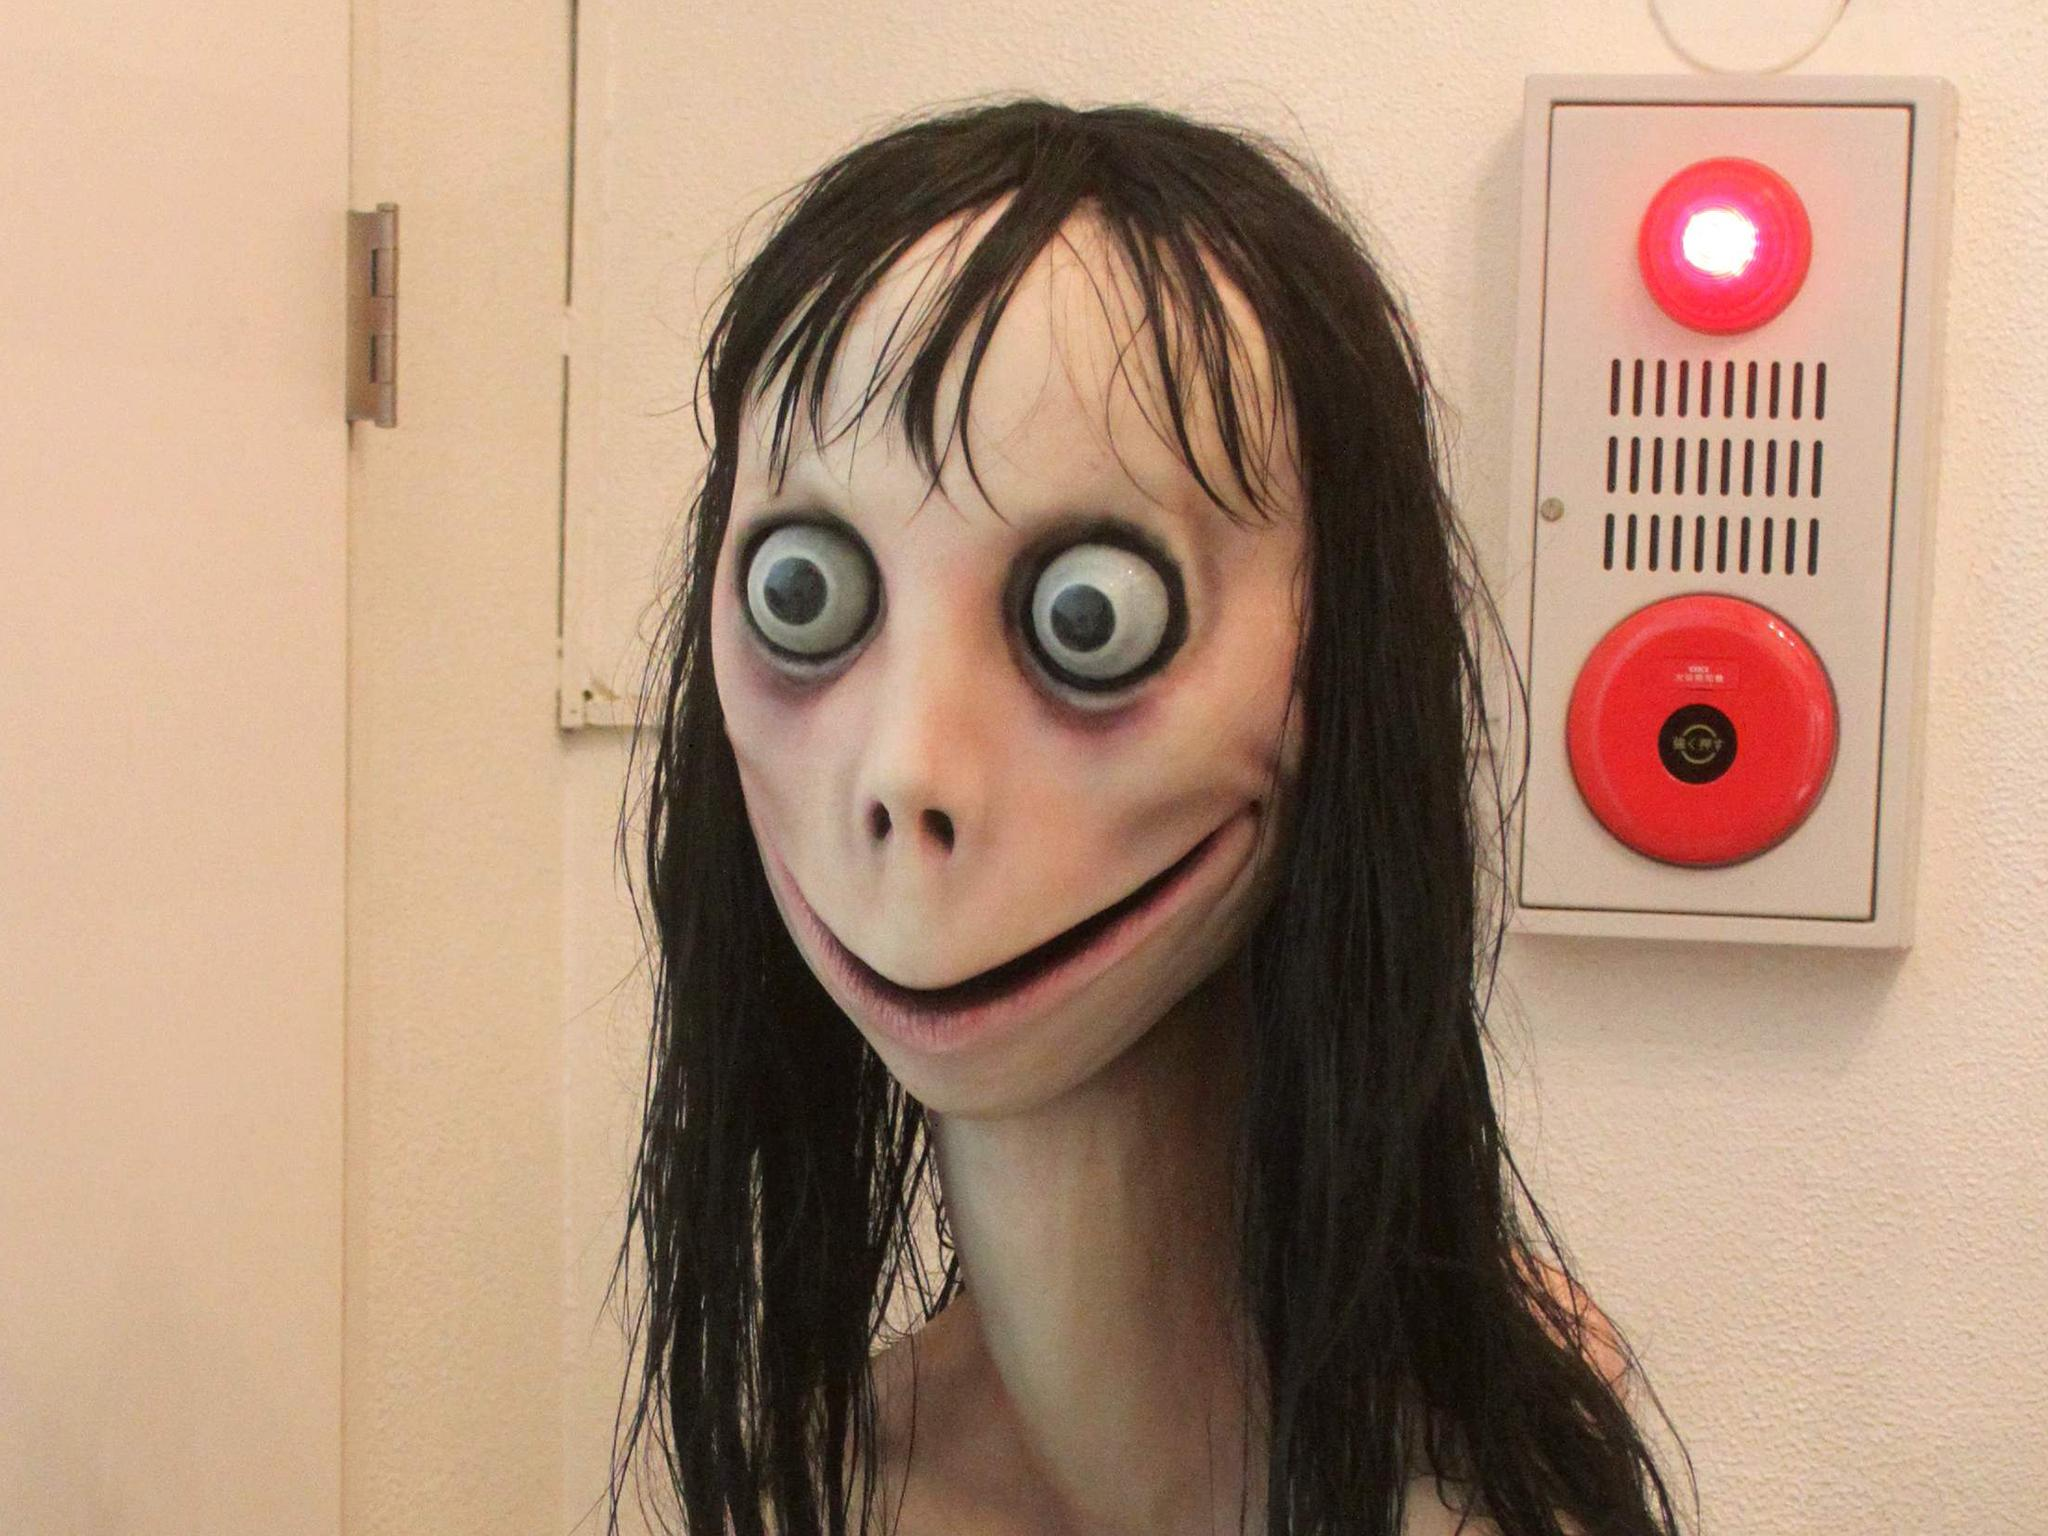 Momo character destroyed after it rotted into even more horrifying state, creator says